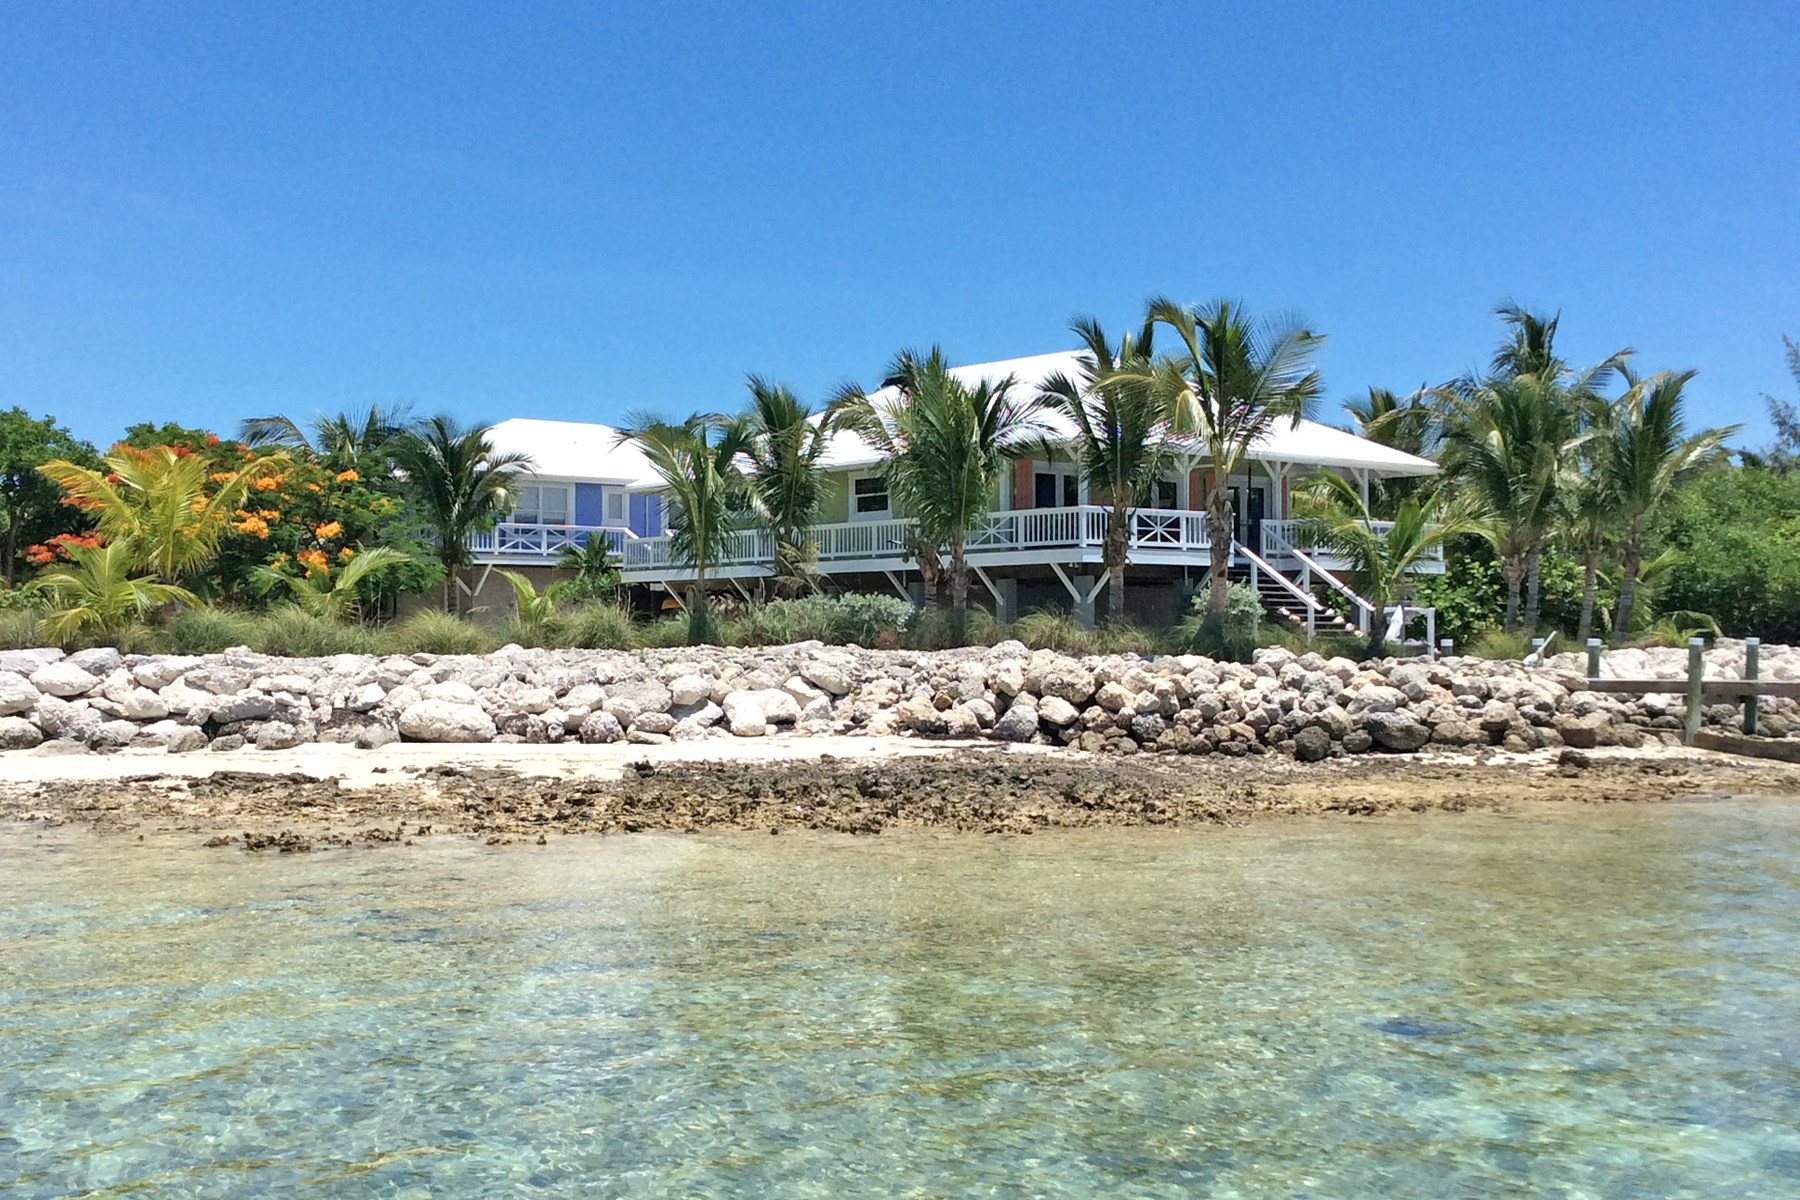 Single Family Home for Sale at Sea Biscuit Abaco Ocean Club, Lubbers Quarters, Abaco Bahamas